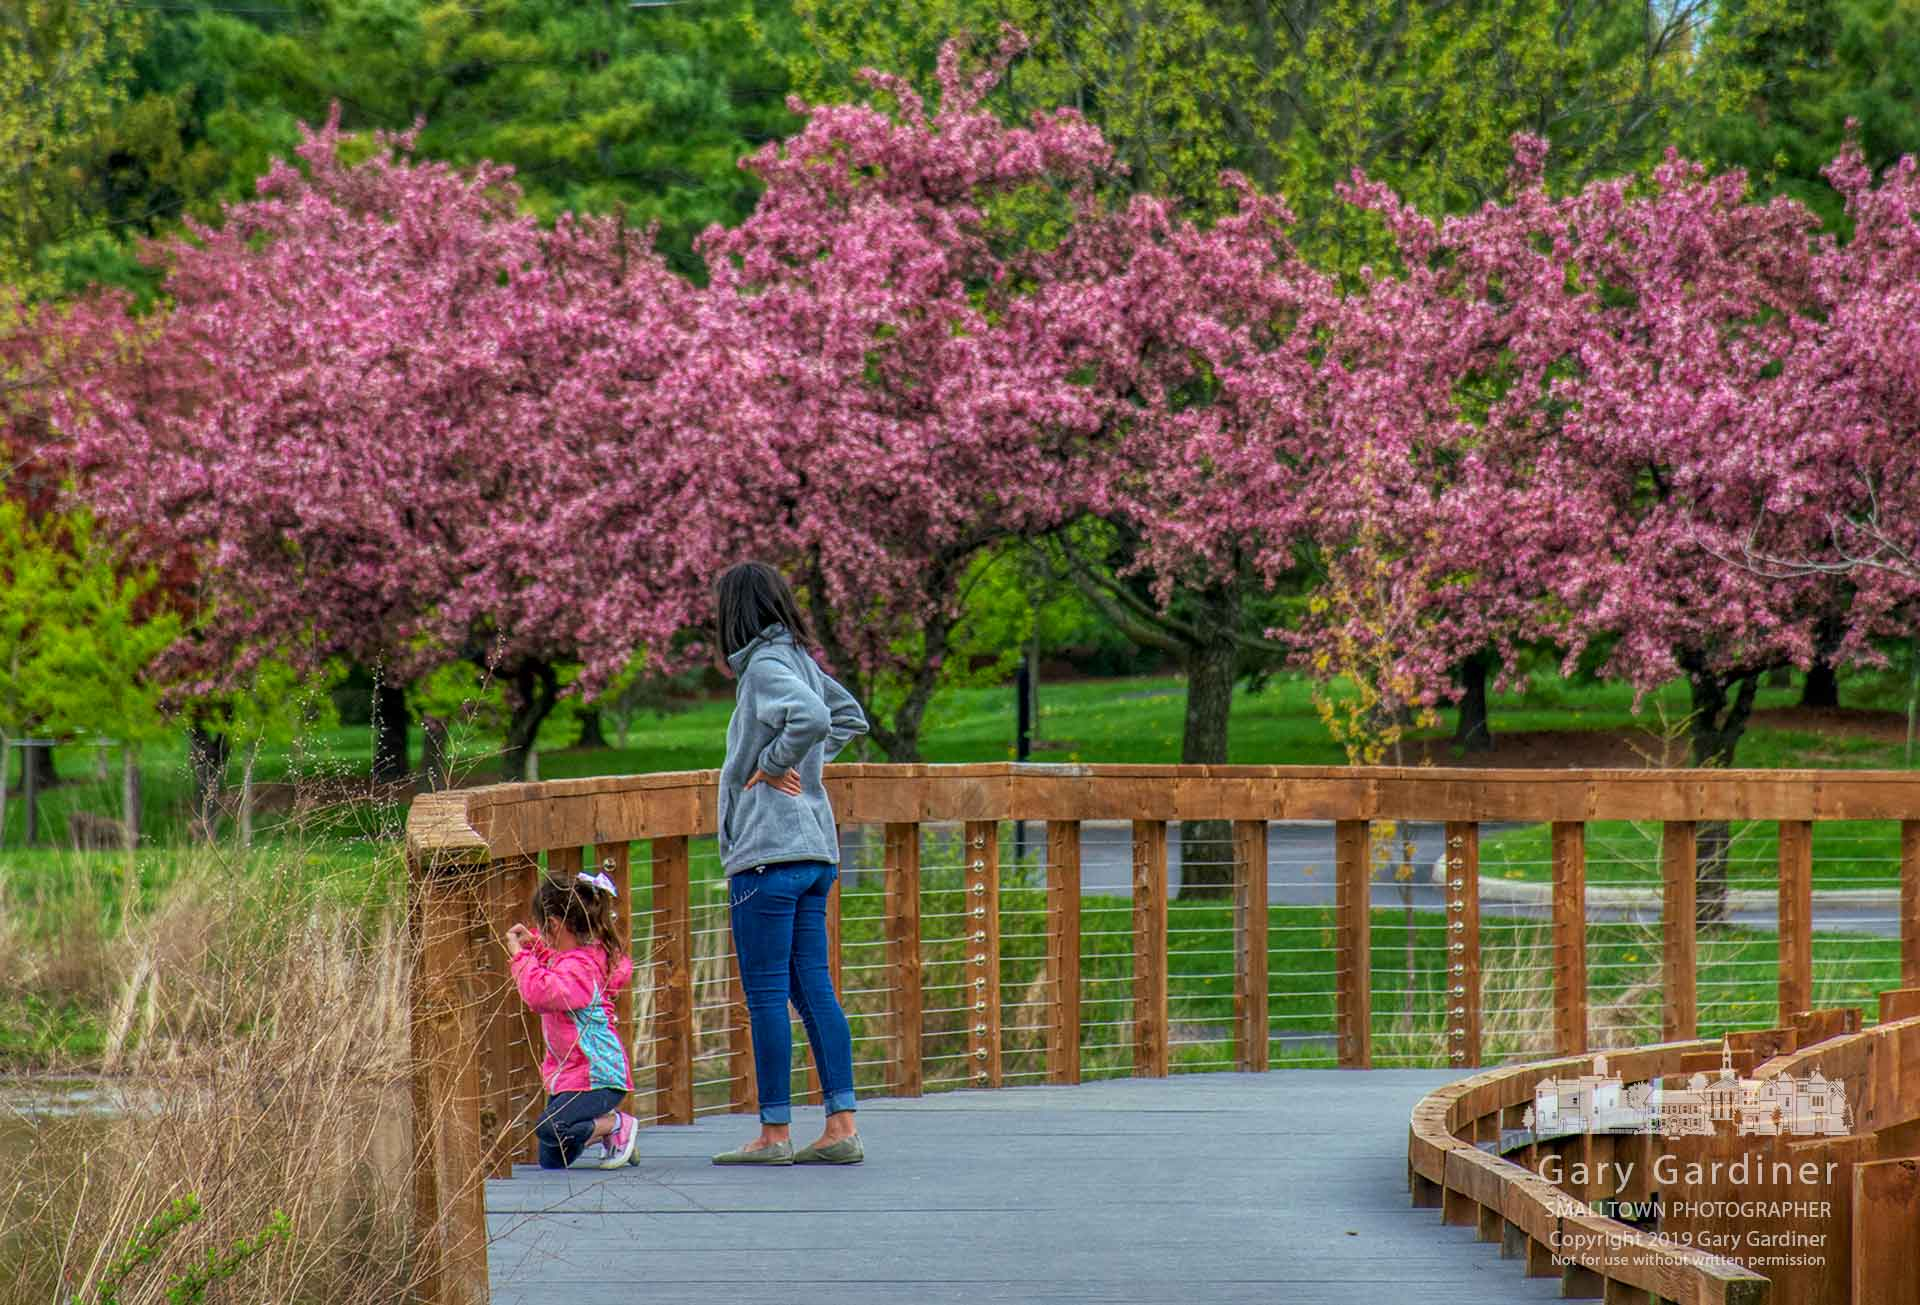 A woman and child out for a morning walk pause on the boardwalk at the wetlands at Highlands. My Final Photo for April 29, 2019.